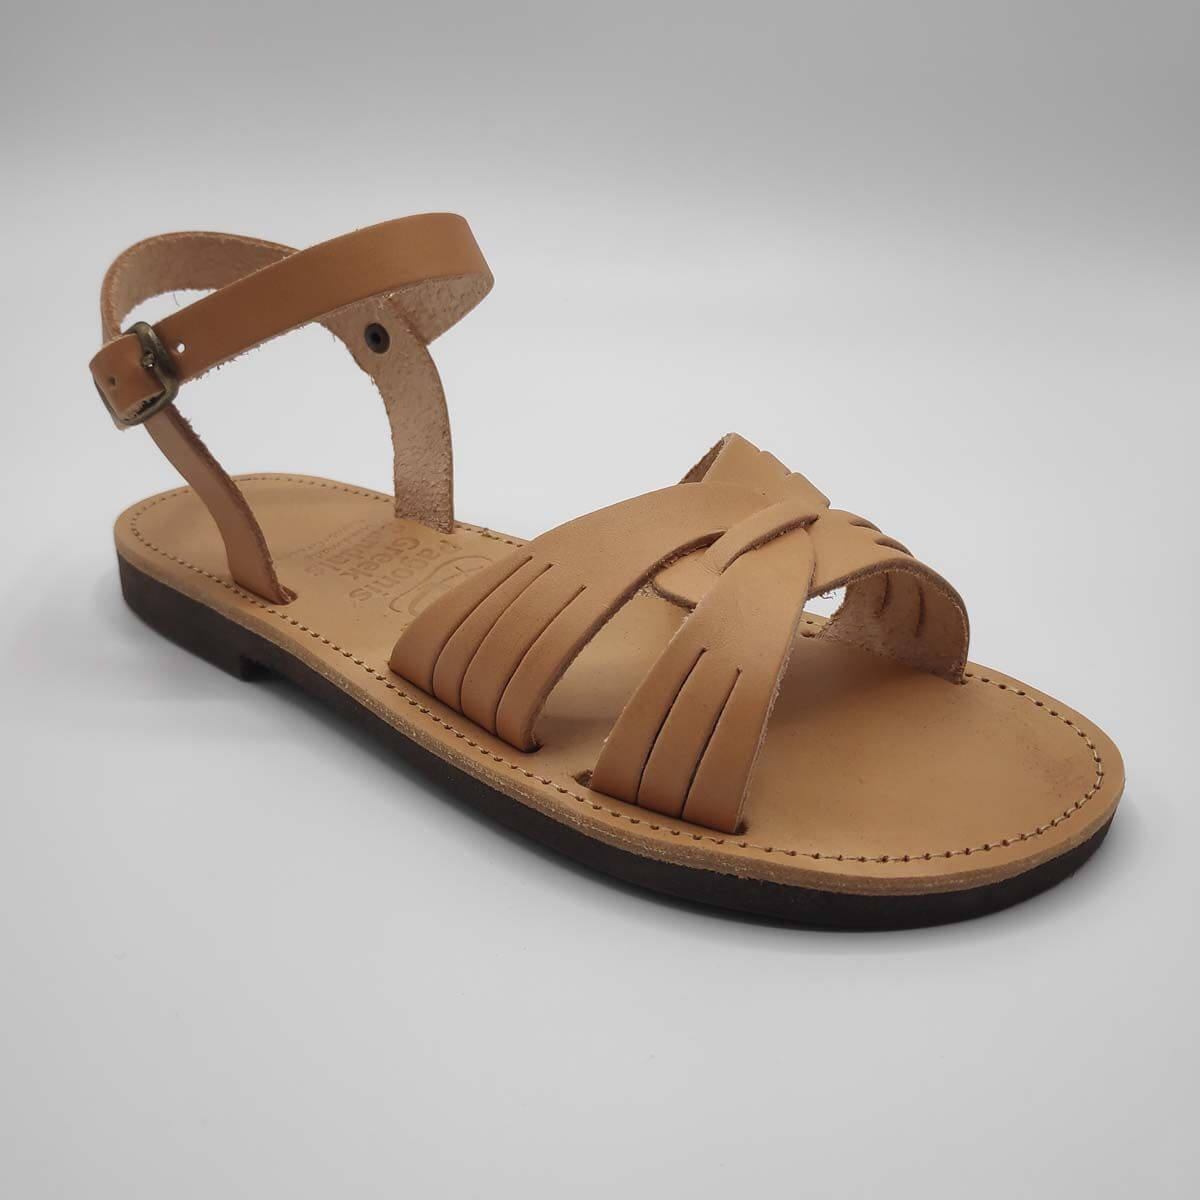 Fiodes leather sandals with side cuts | Pagonis Greek Sandals